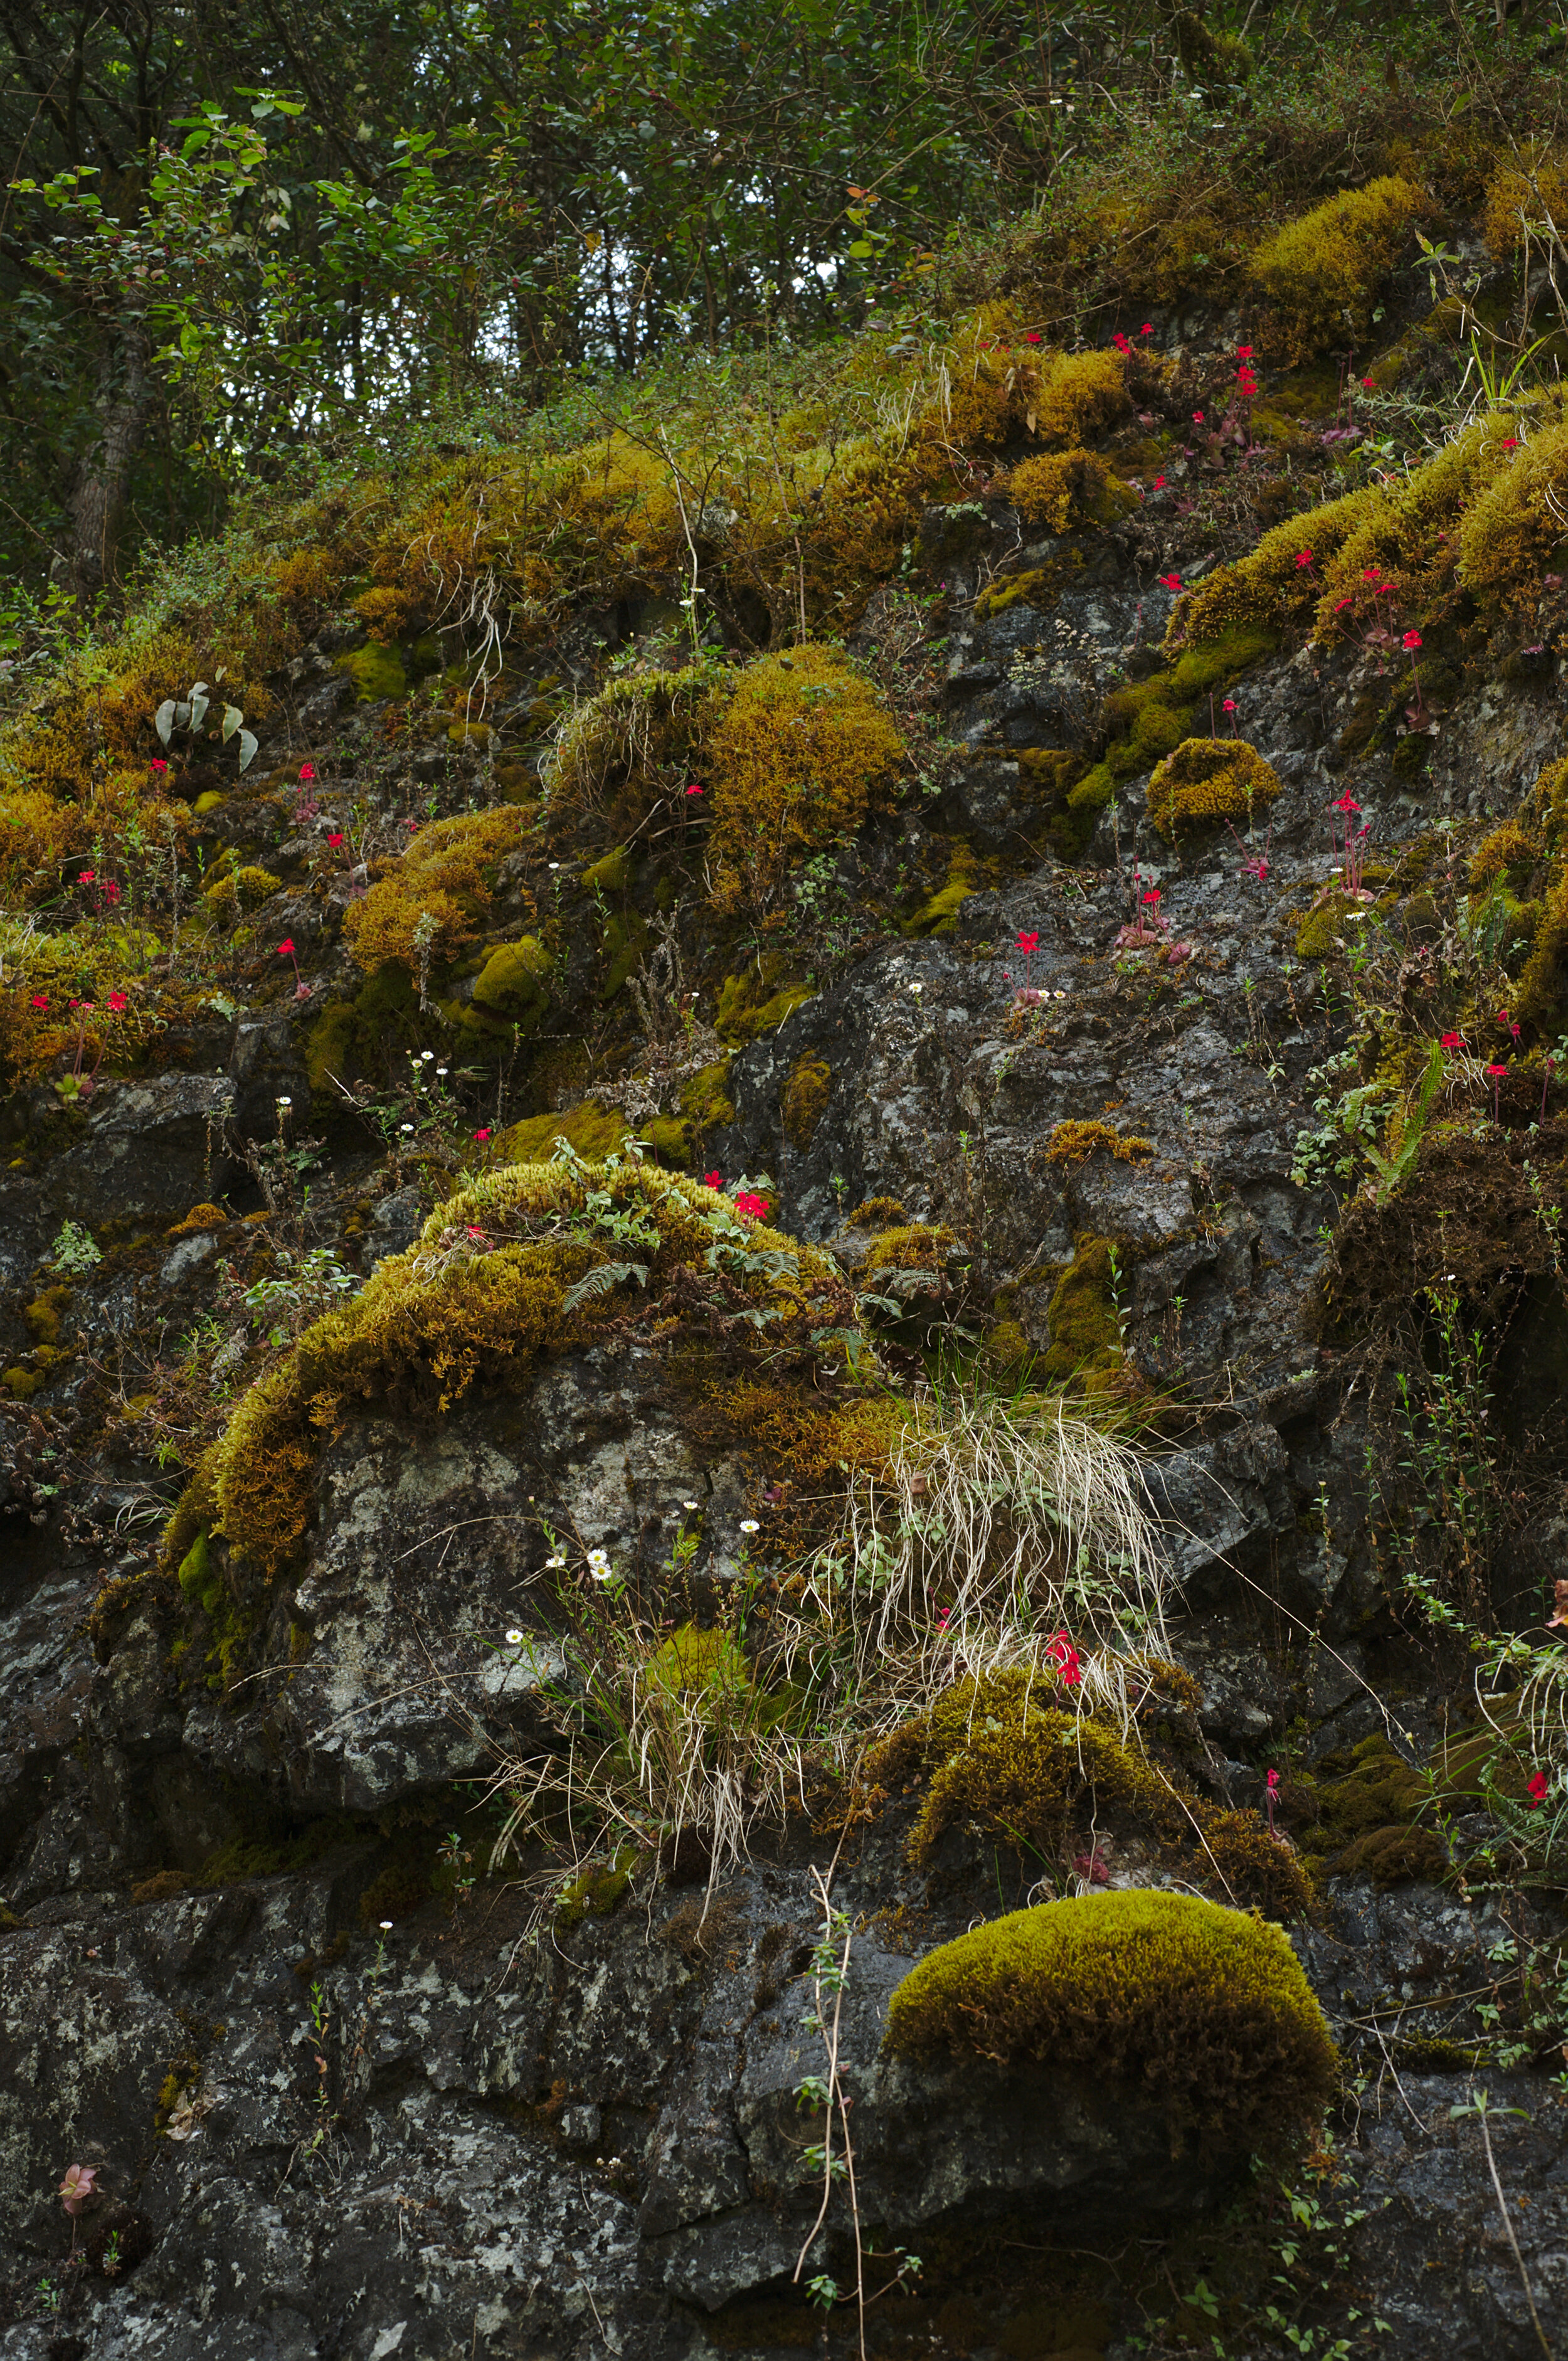 A steep rock slope showing typical habitat for  Pinguicula laueana . Many Mesoamerican butterwort species are lithophytes and occur in similar settings. Image: F. Muller.